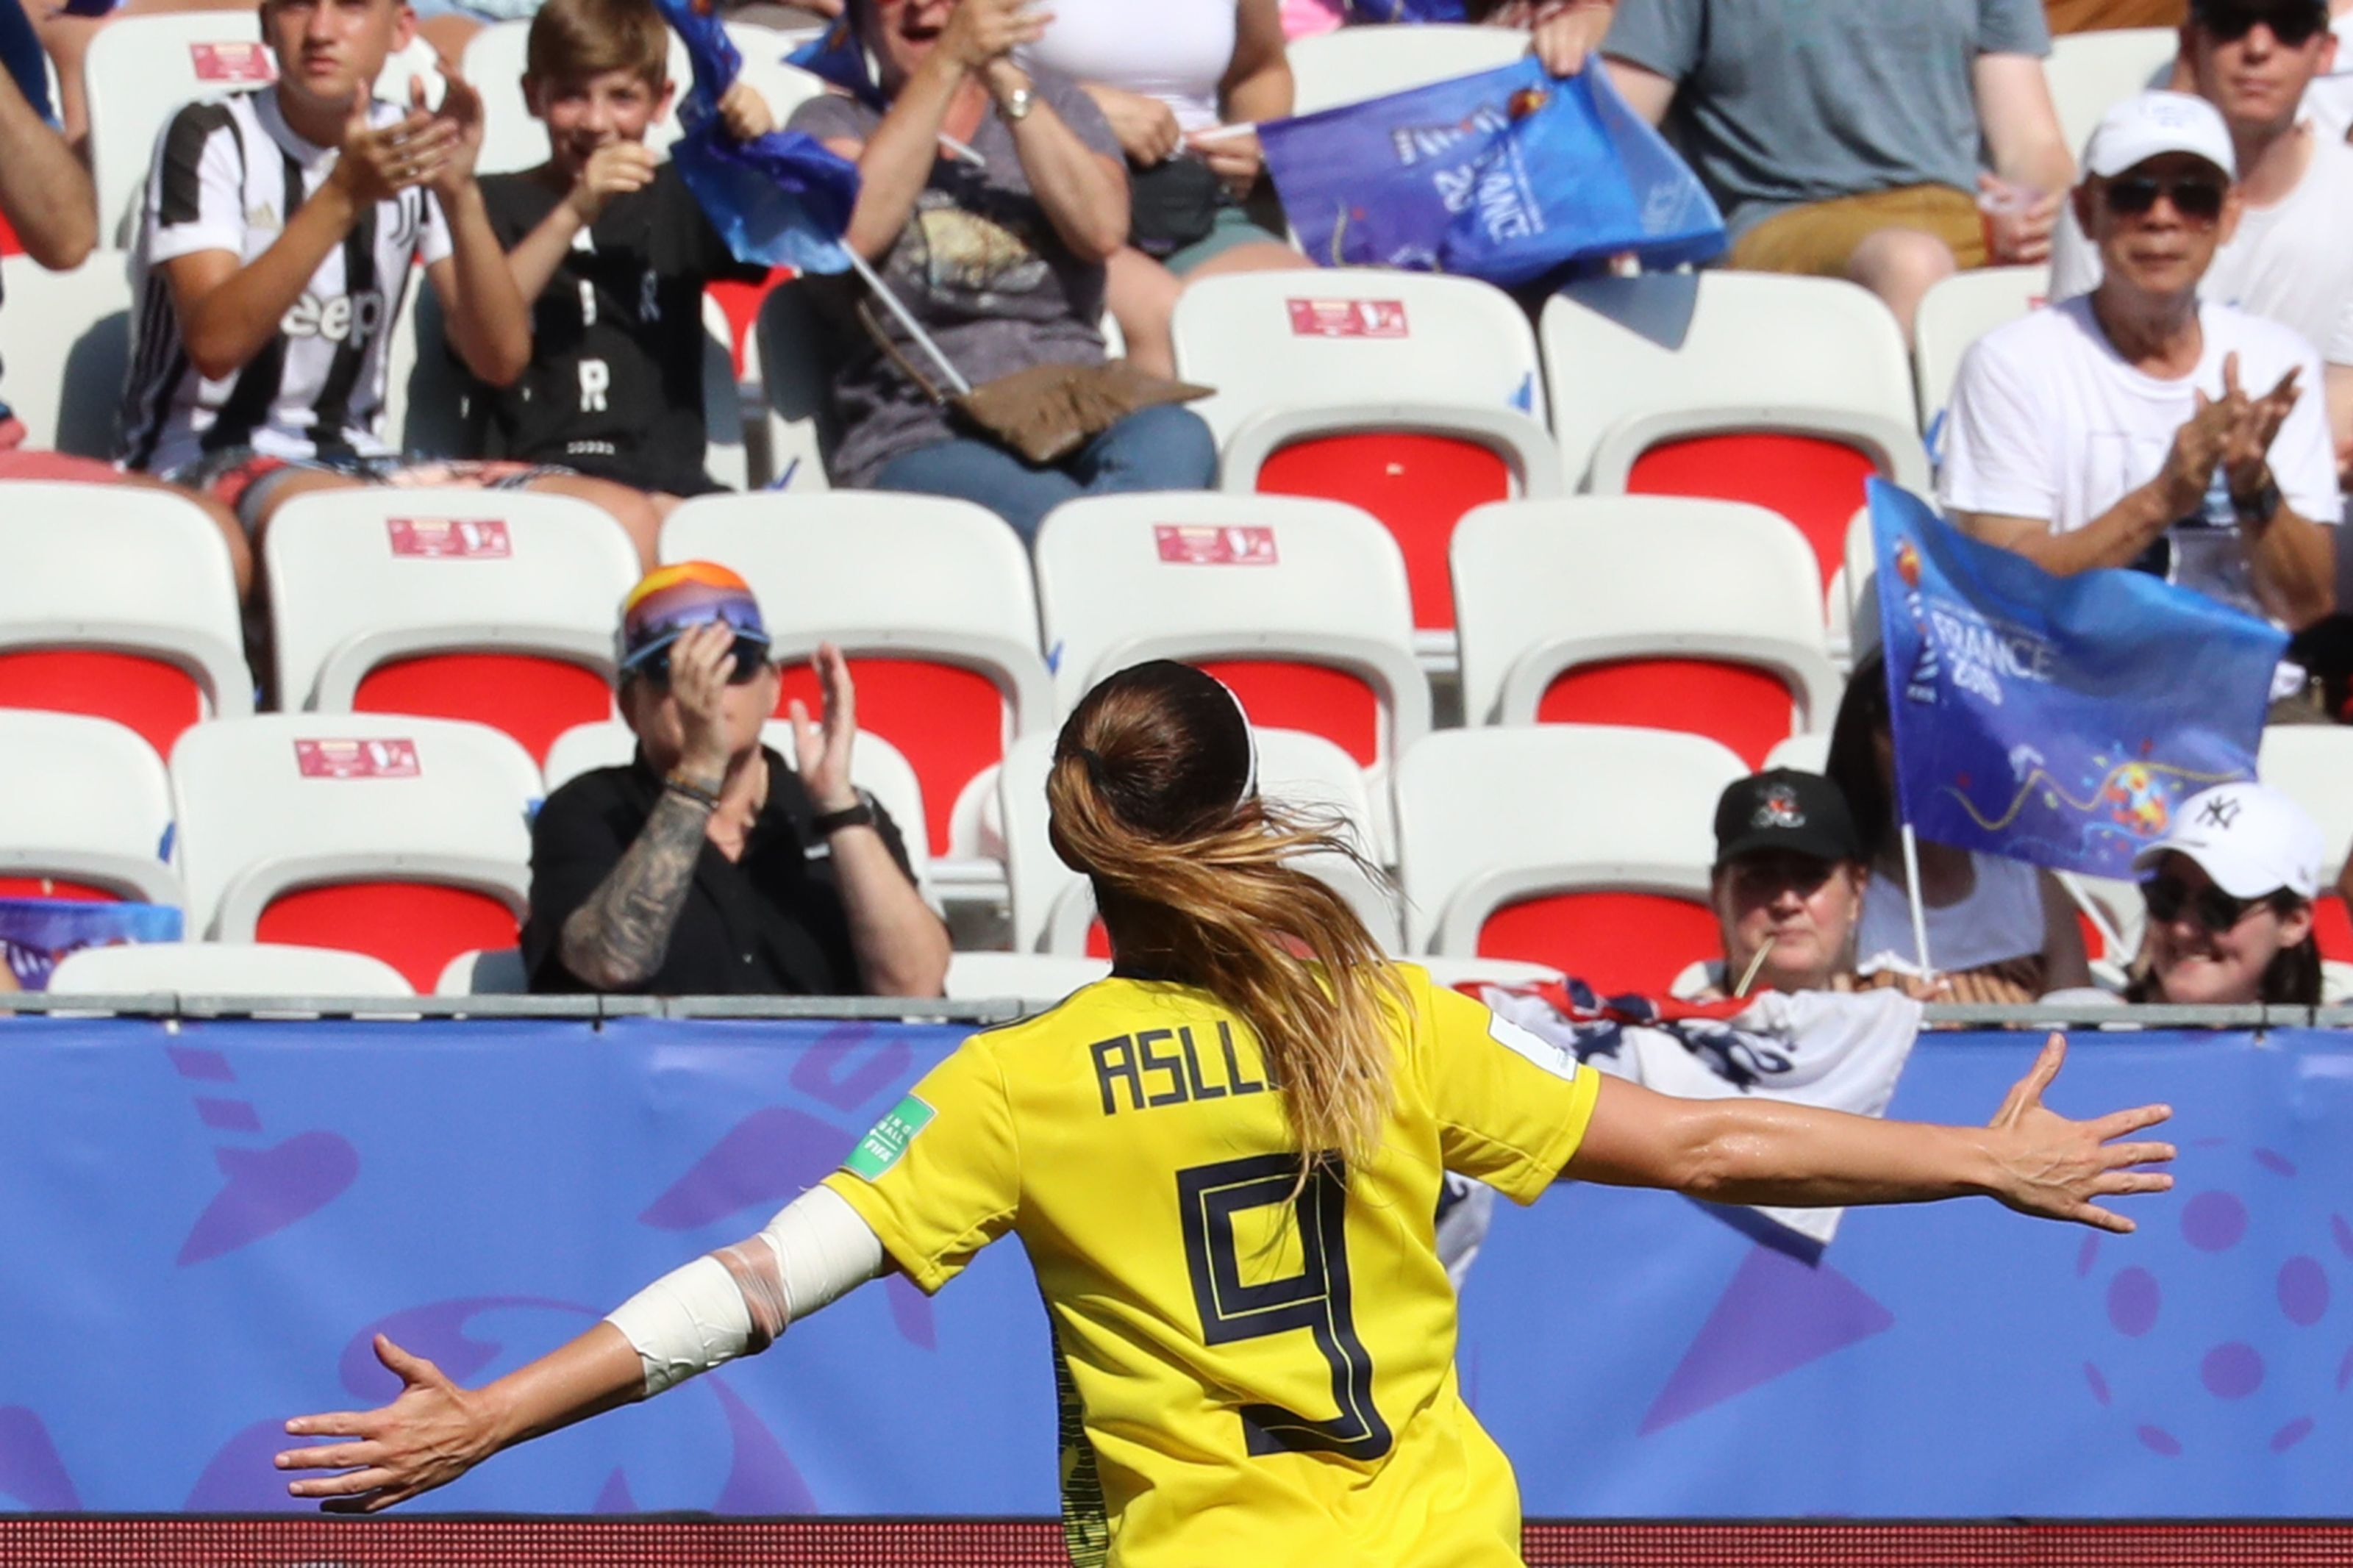 Real Madrid make Kosovare Asllani their first signing to women's team